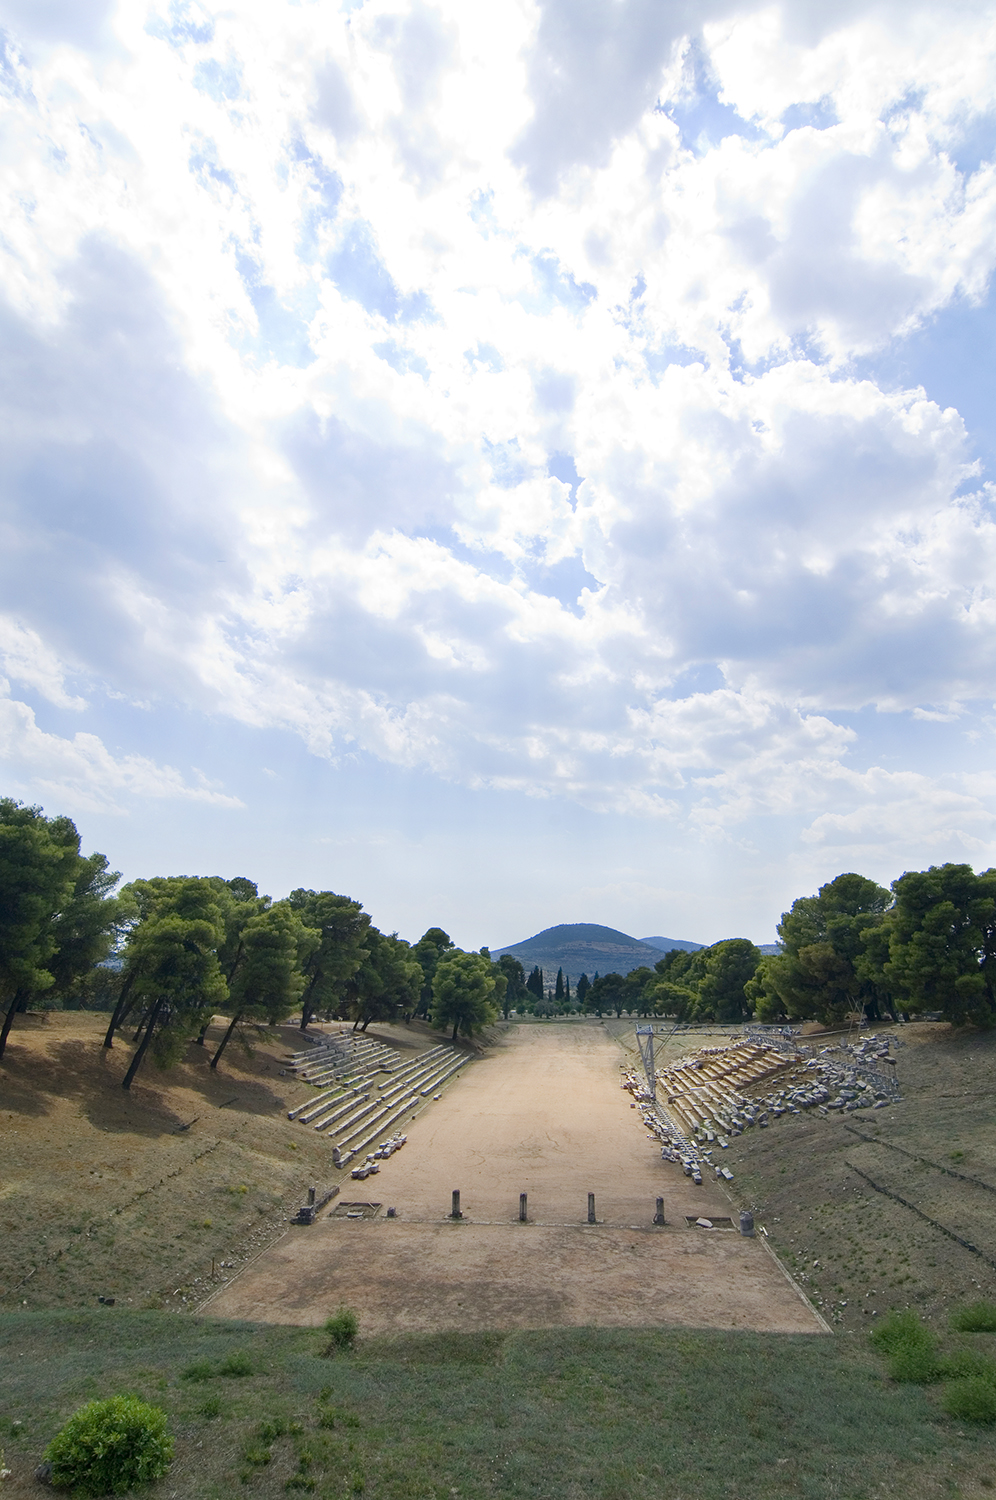 Greece / Epidaurus / Stadium of Epidaurus